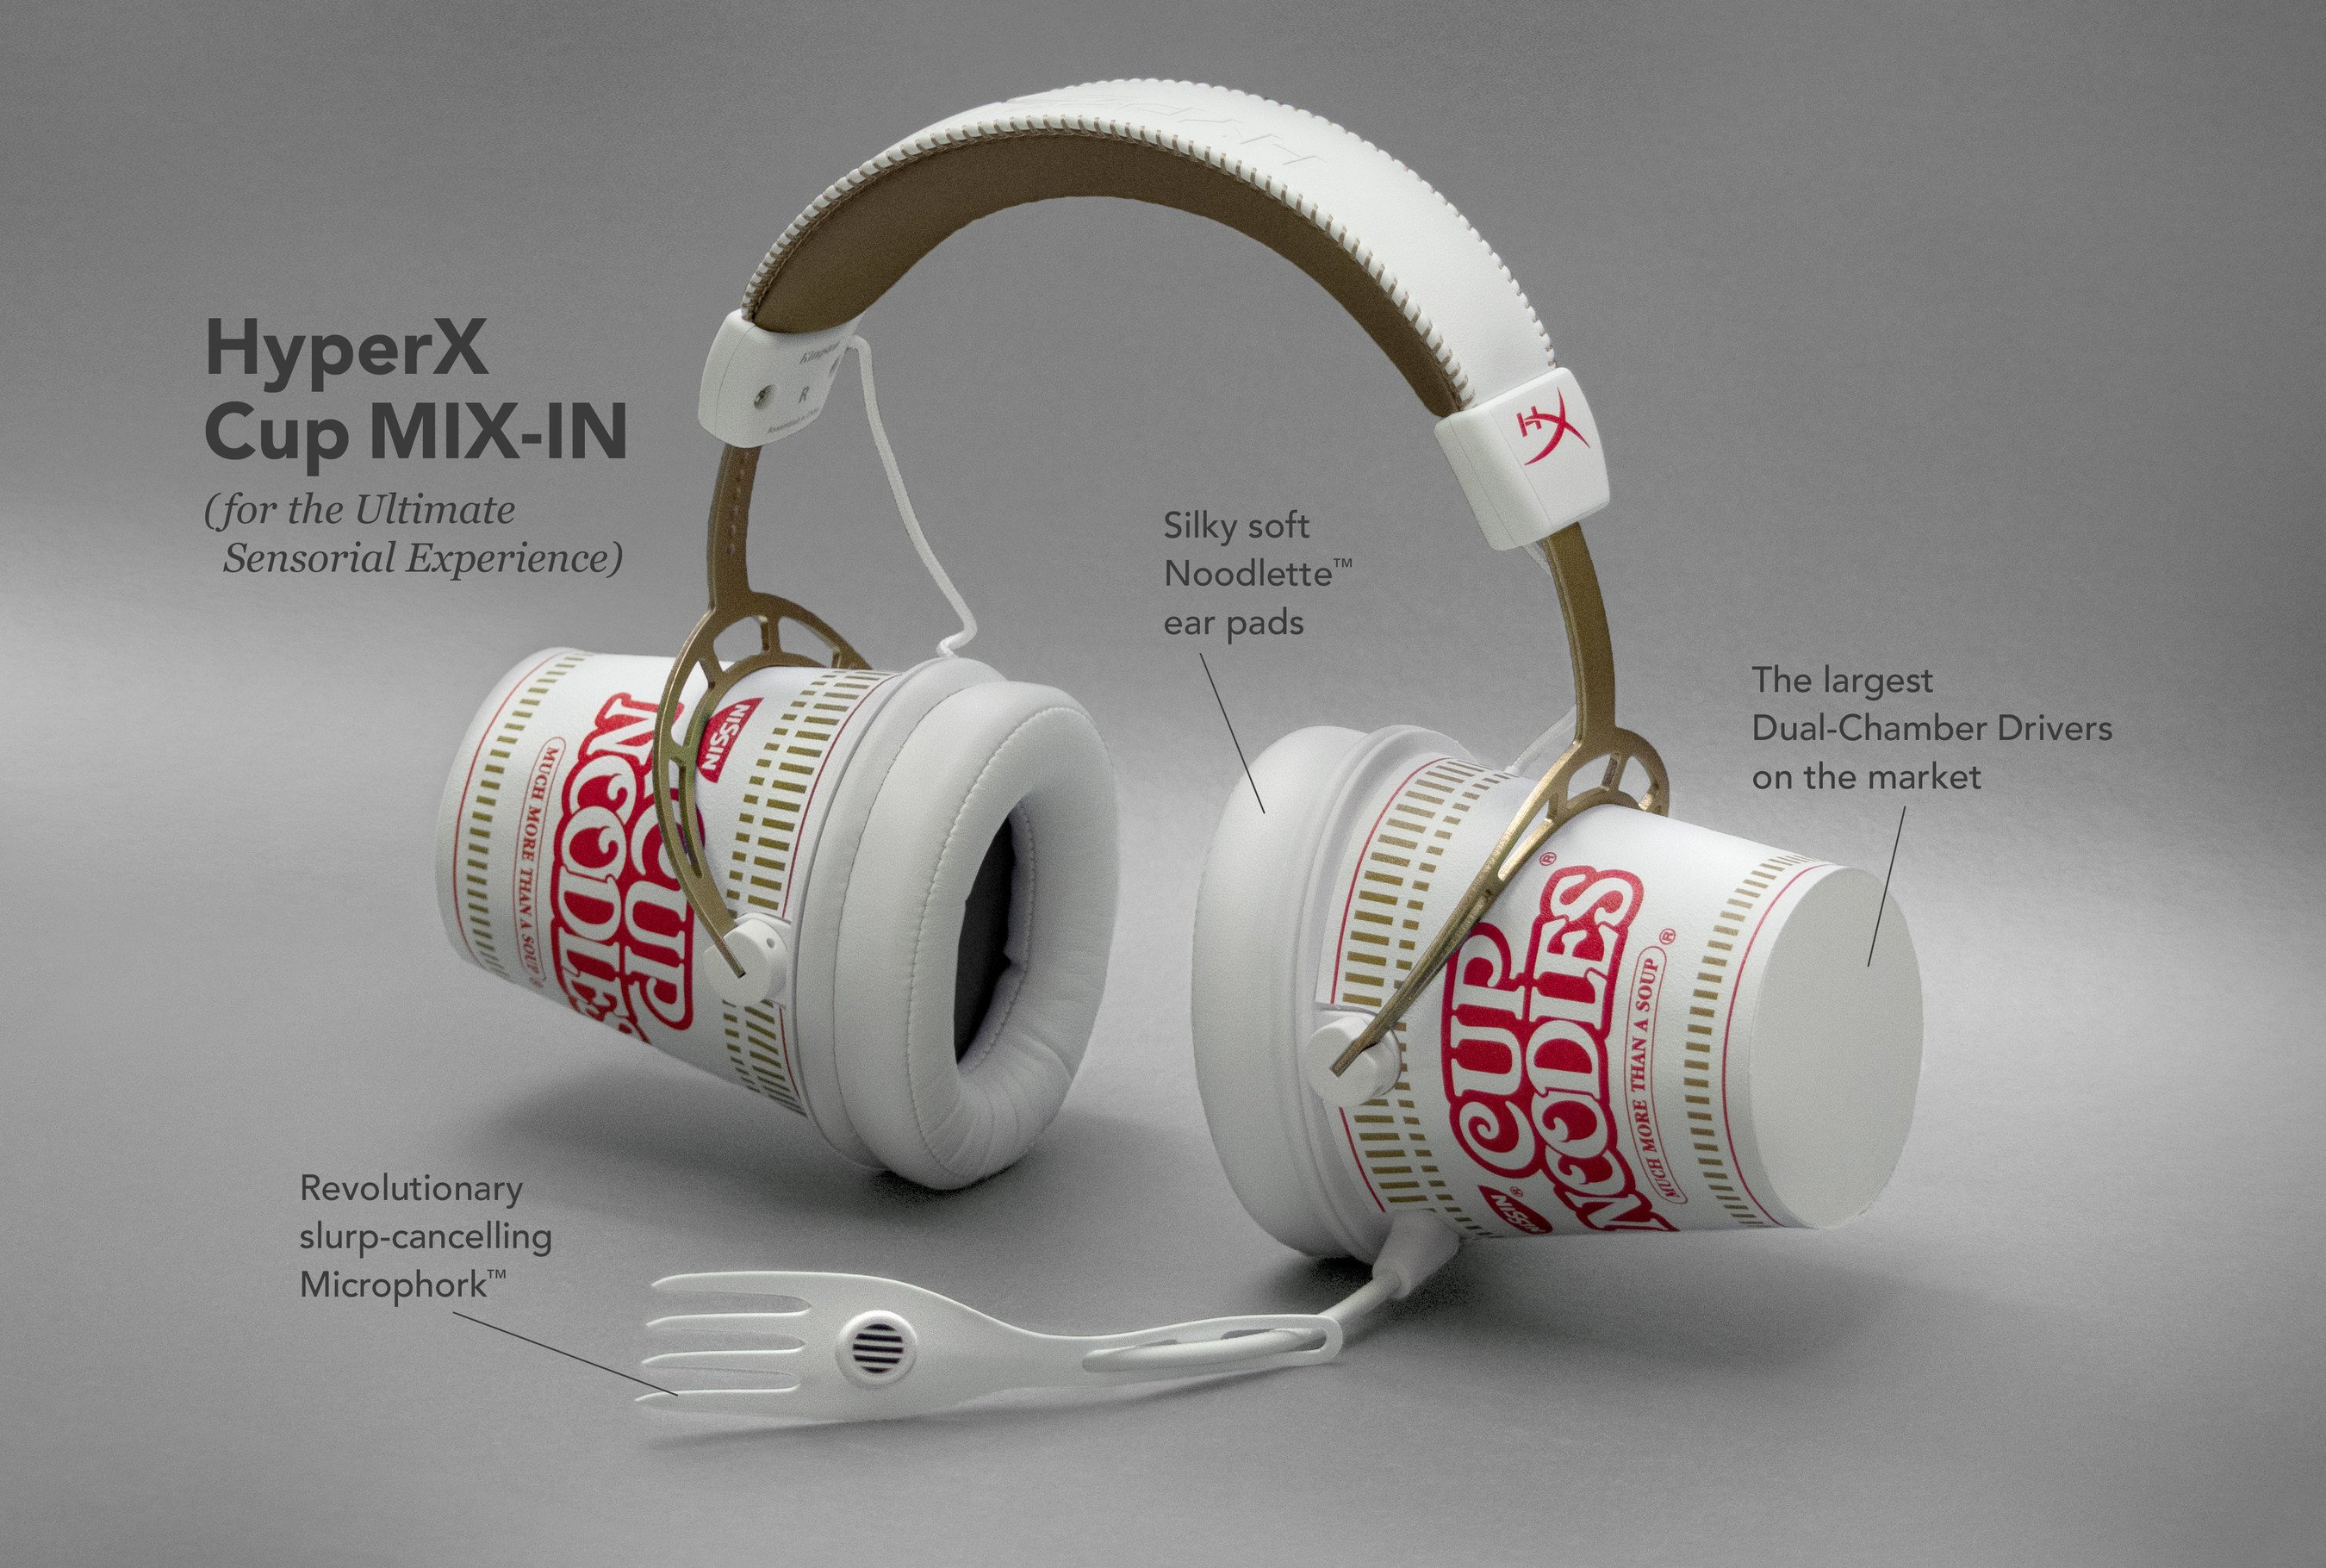 The Nissin Cup Noodles Is A Premium Headphone And It's Collectible – It's Been Released On April Fools' Day